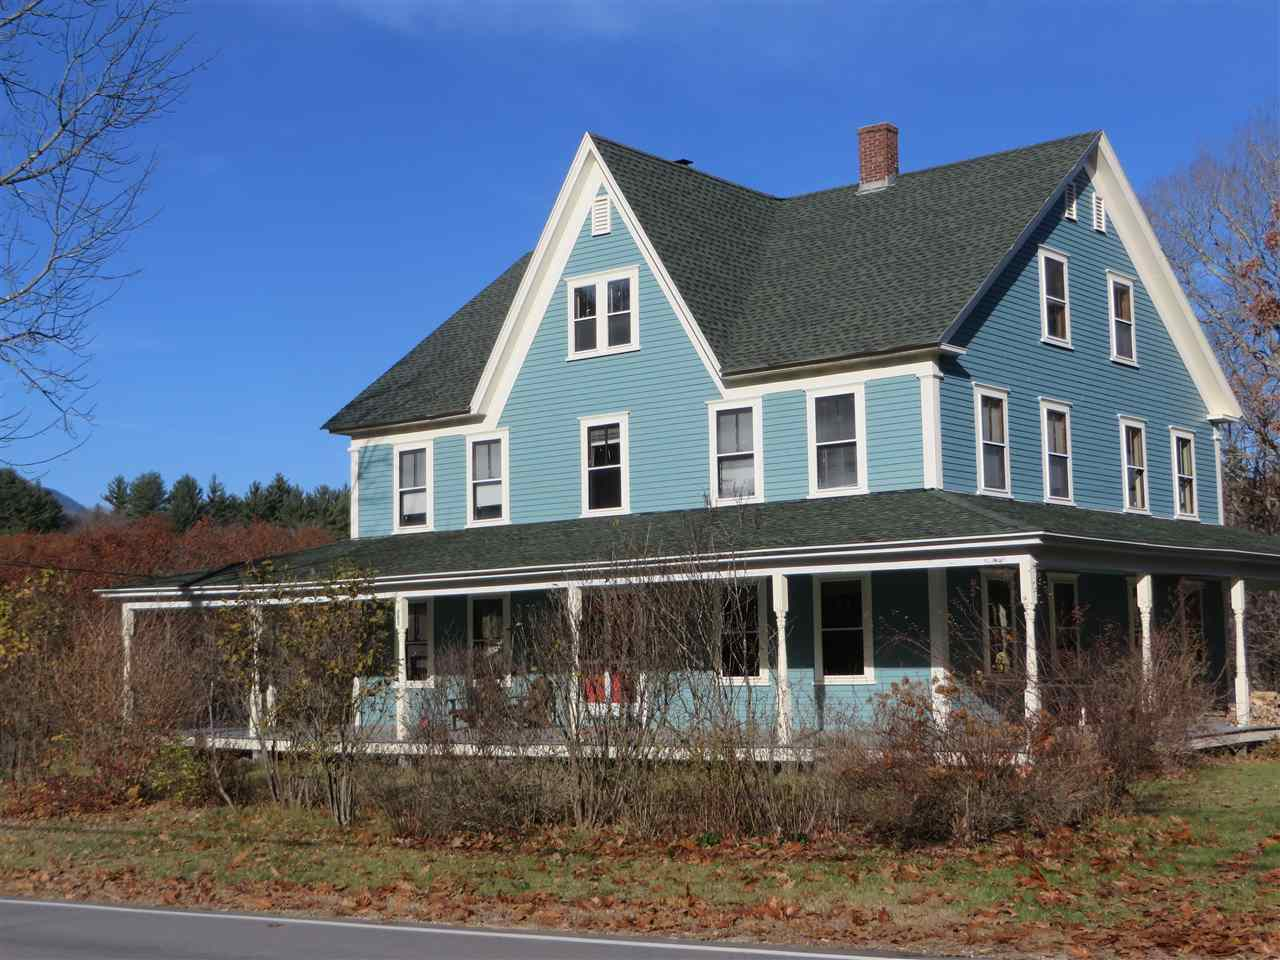 VILLAGE OF NORTH SANDWICH IN TOWN OF SANDWICH NH Homes for sale